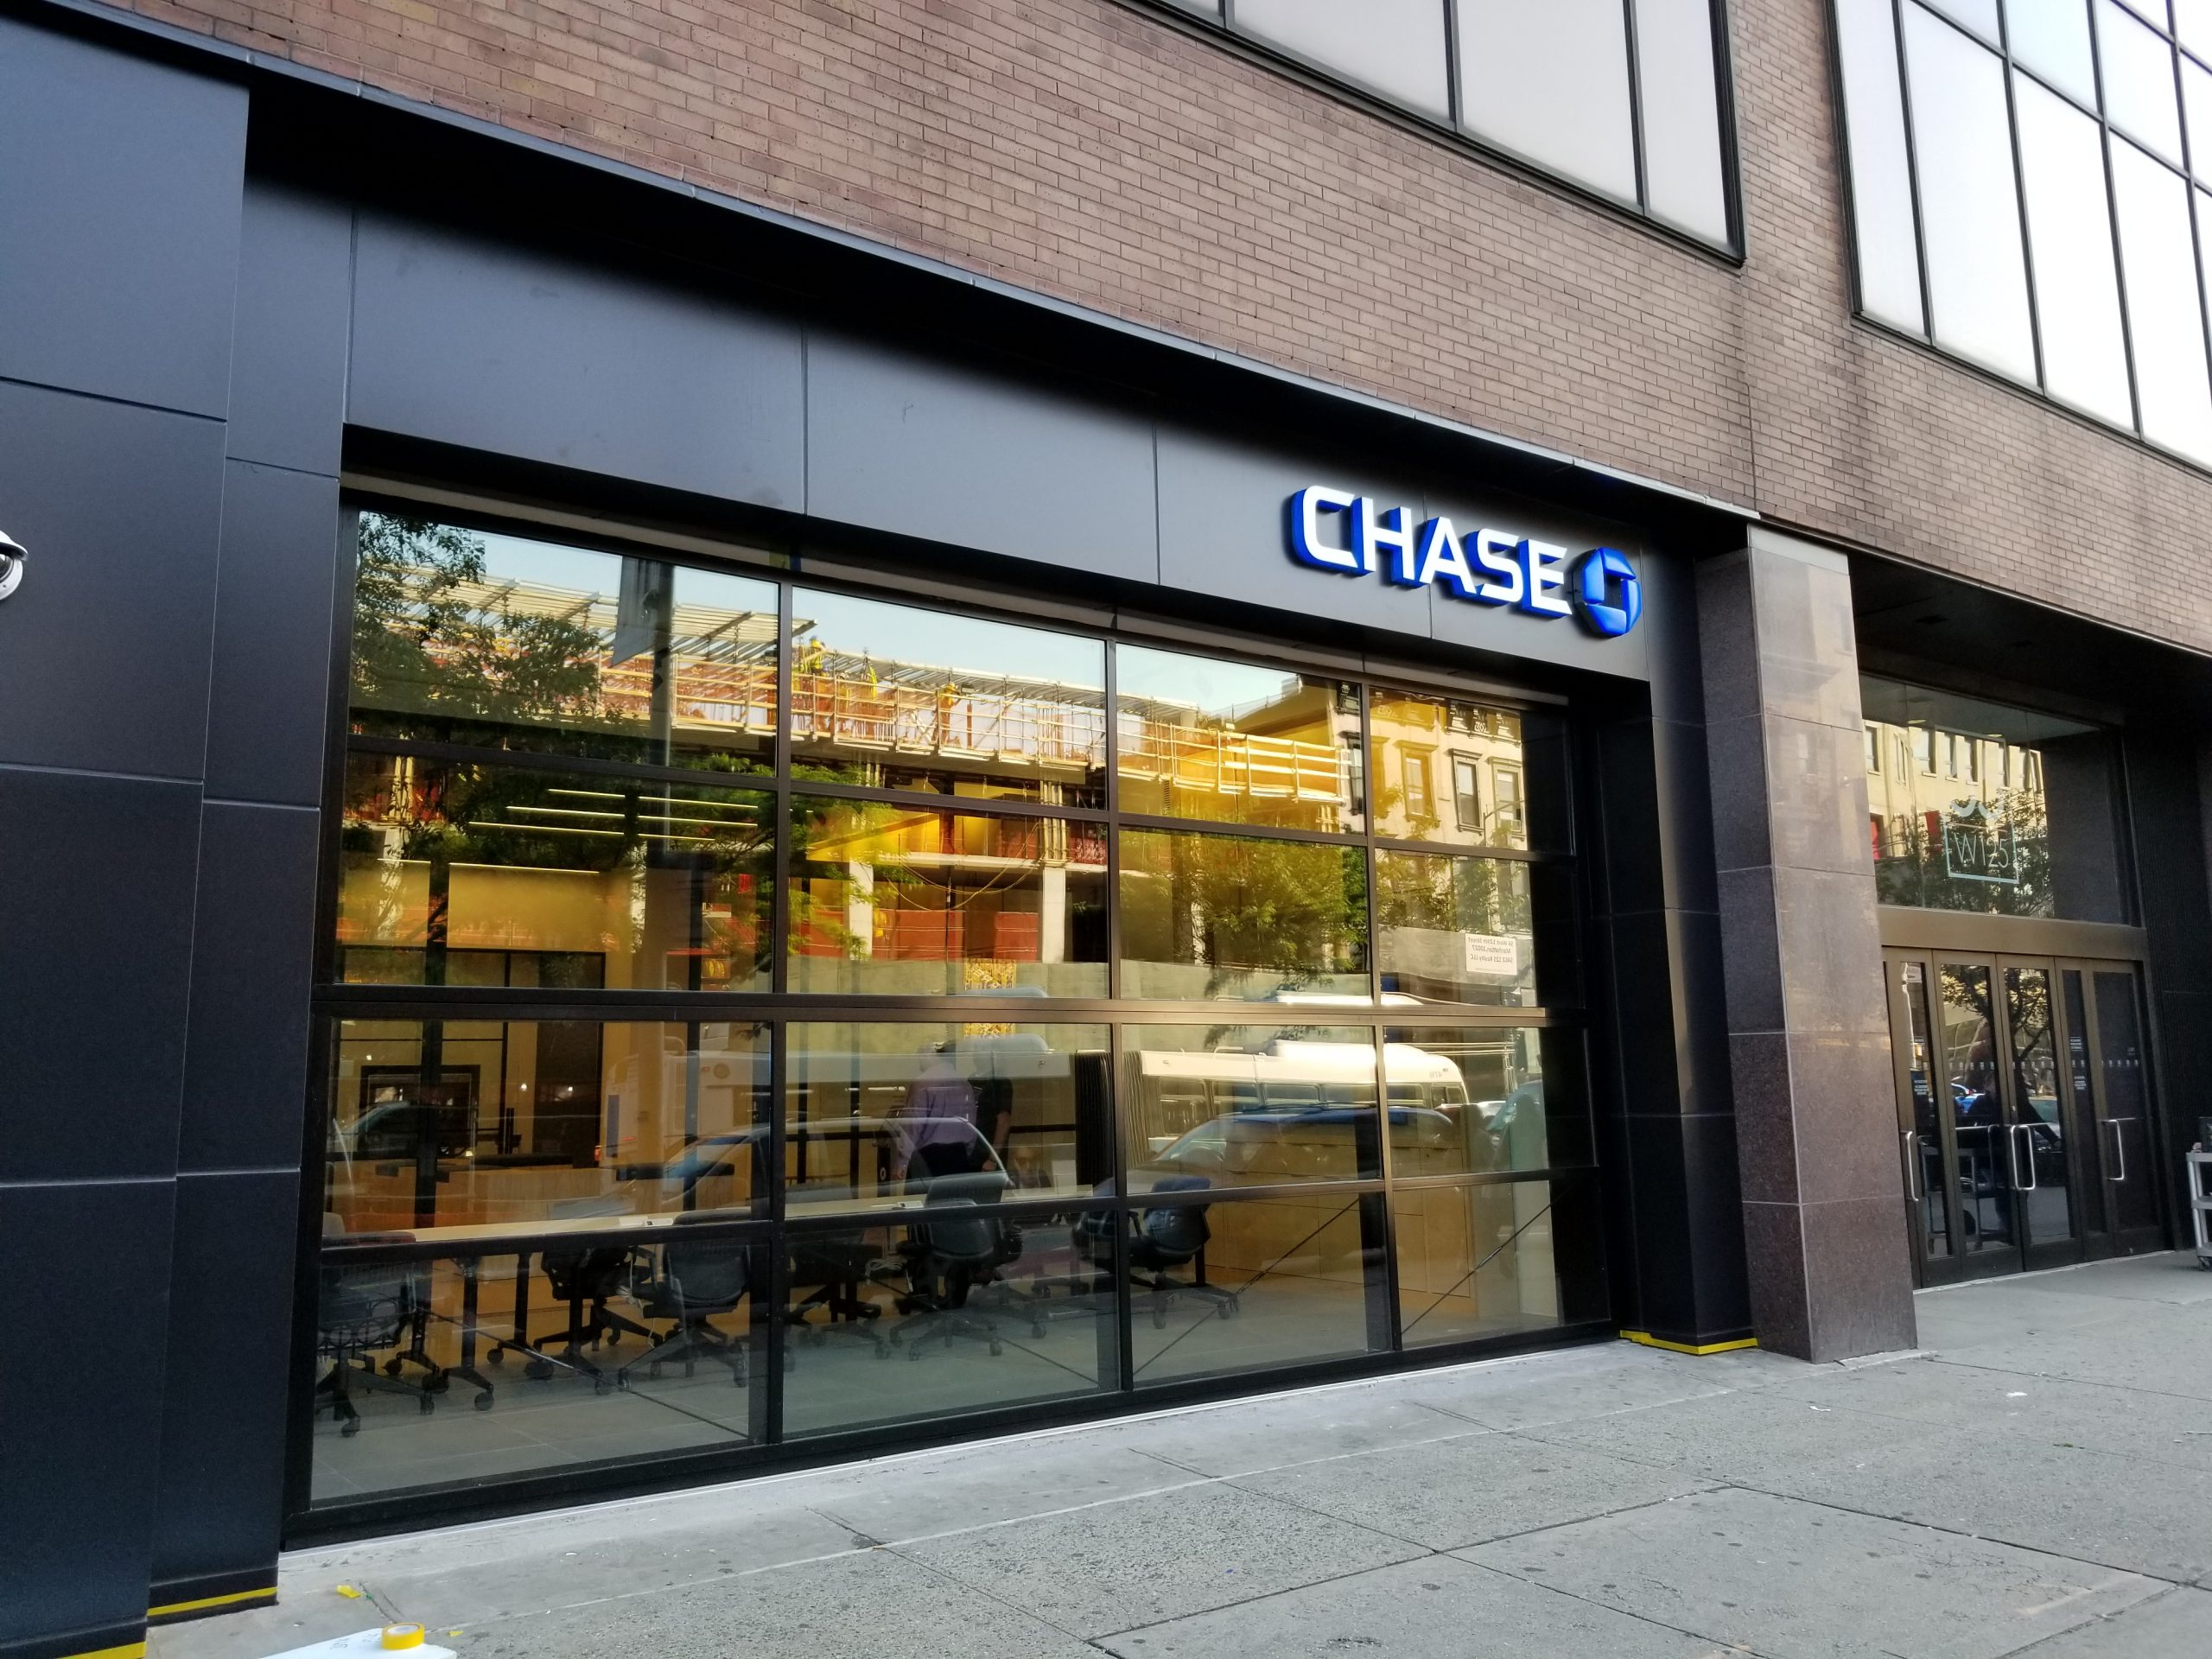 Chase Bank and Reaching Back to the Community